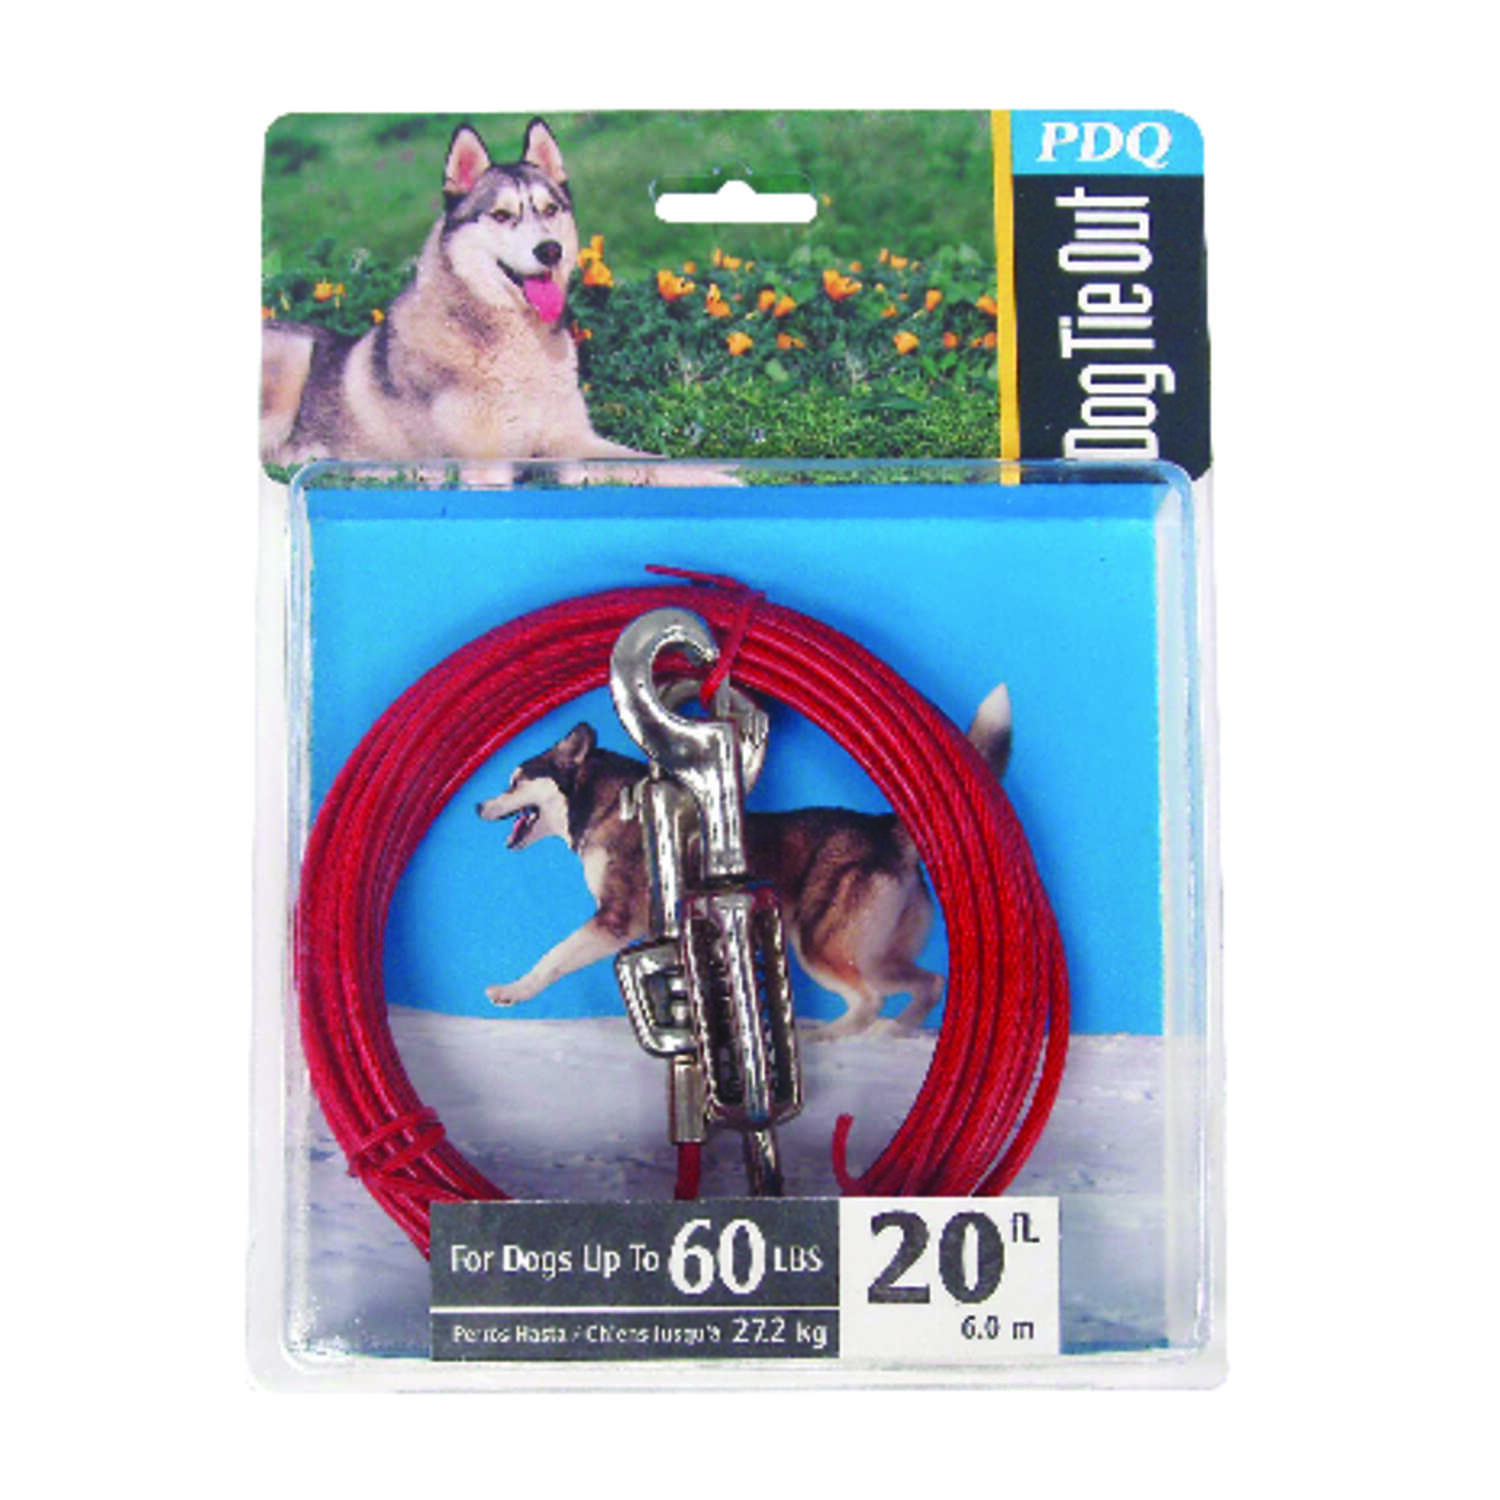 Boss Pet  PDQ  Red  Vinyl Coated Cable  Dog  Tie Out  Large